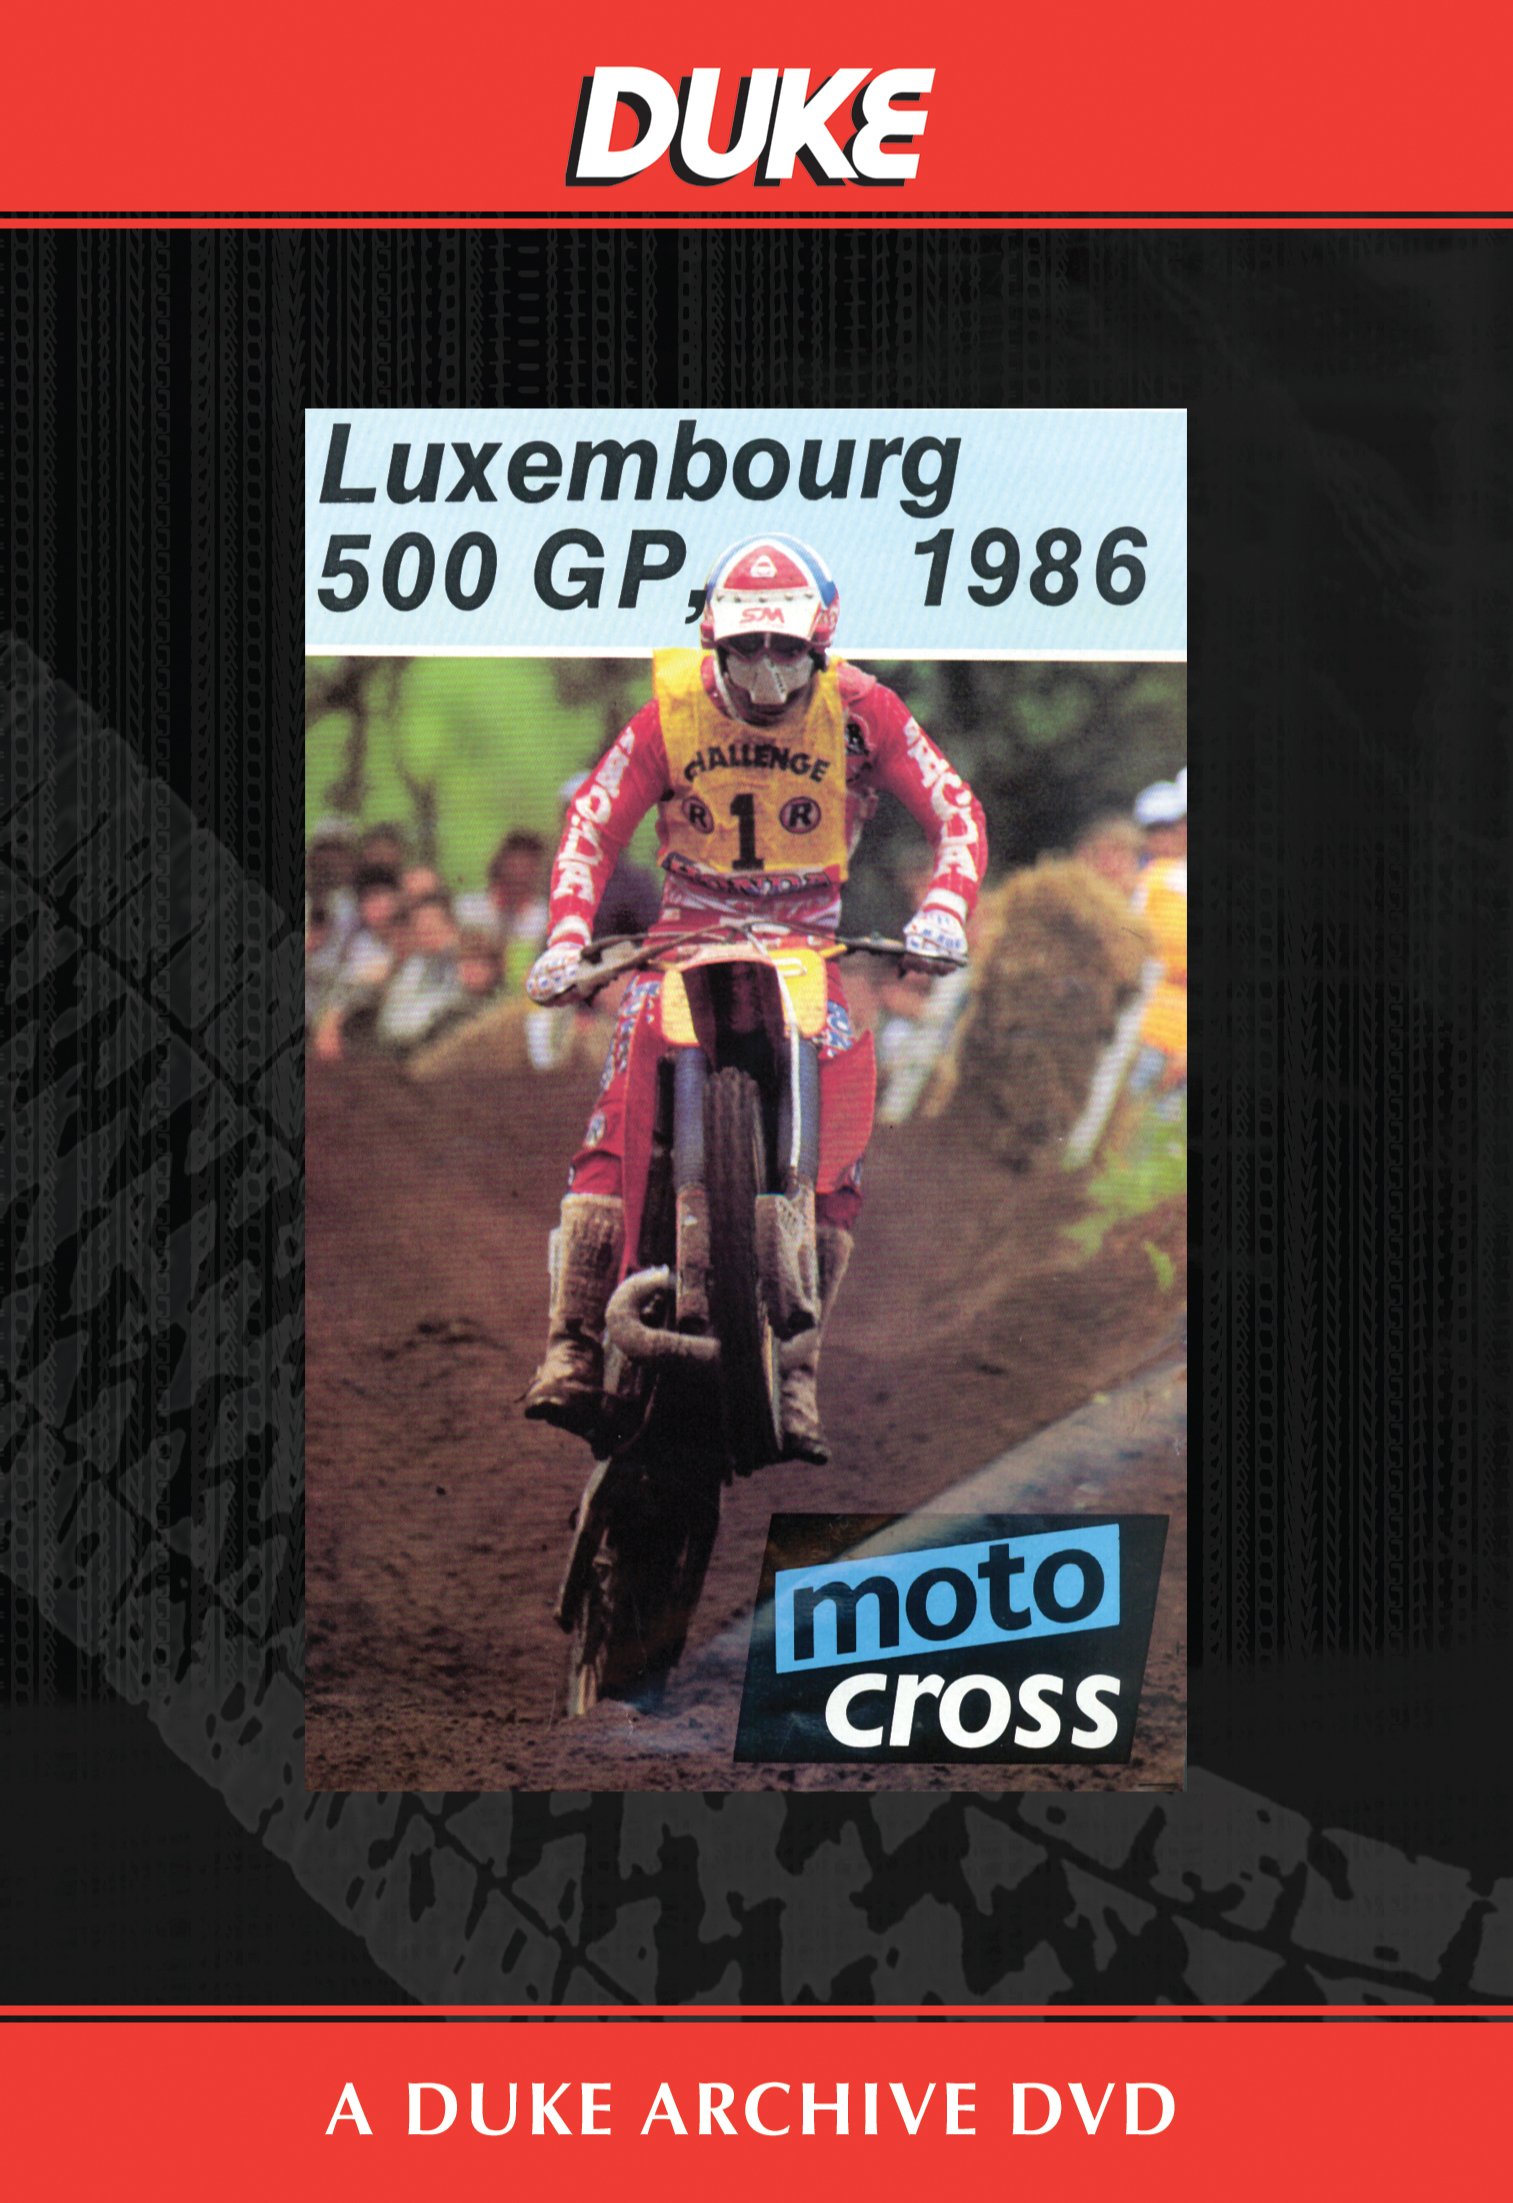 Motocross 500 gp 1986 luxembourg download click to enlarge